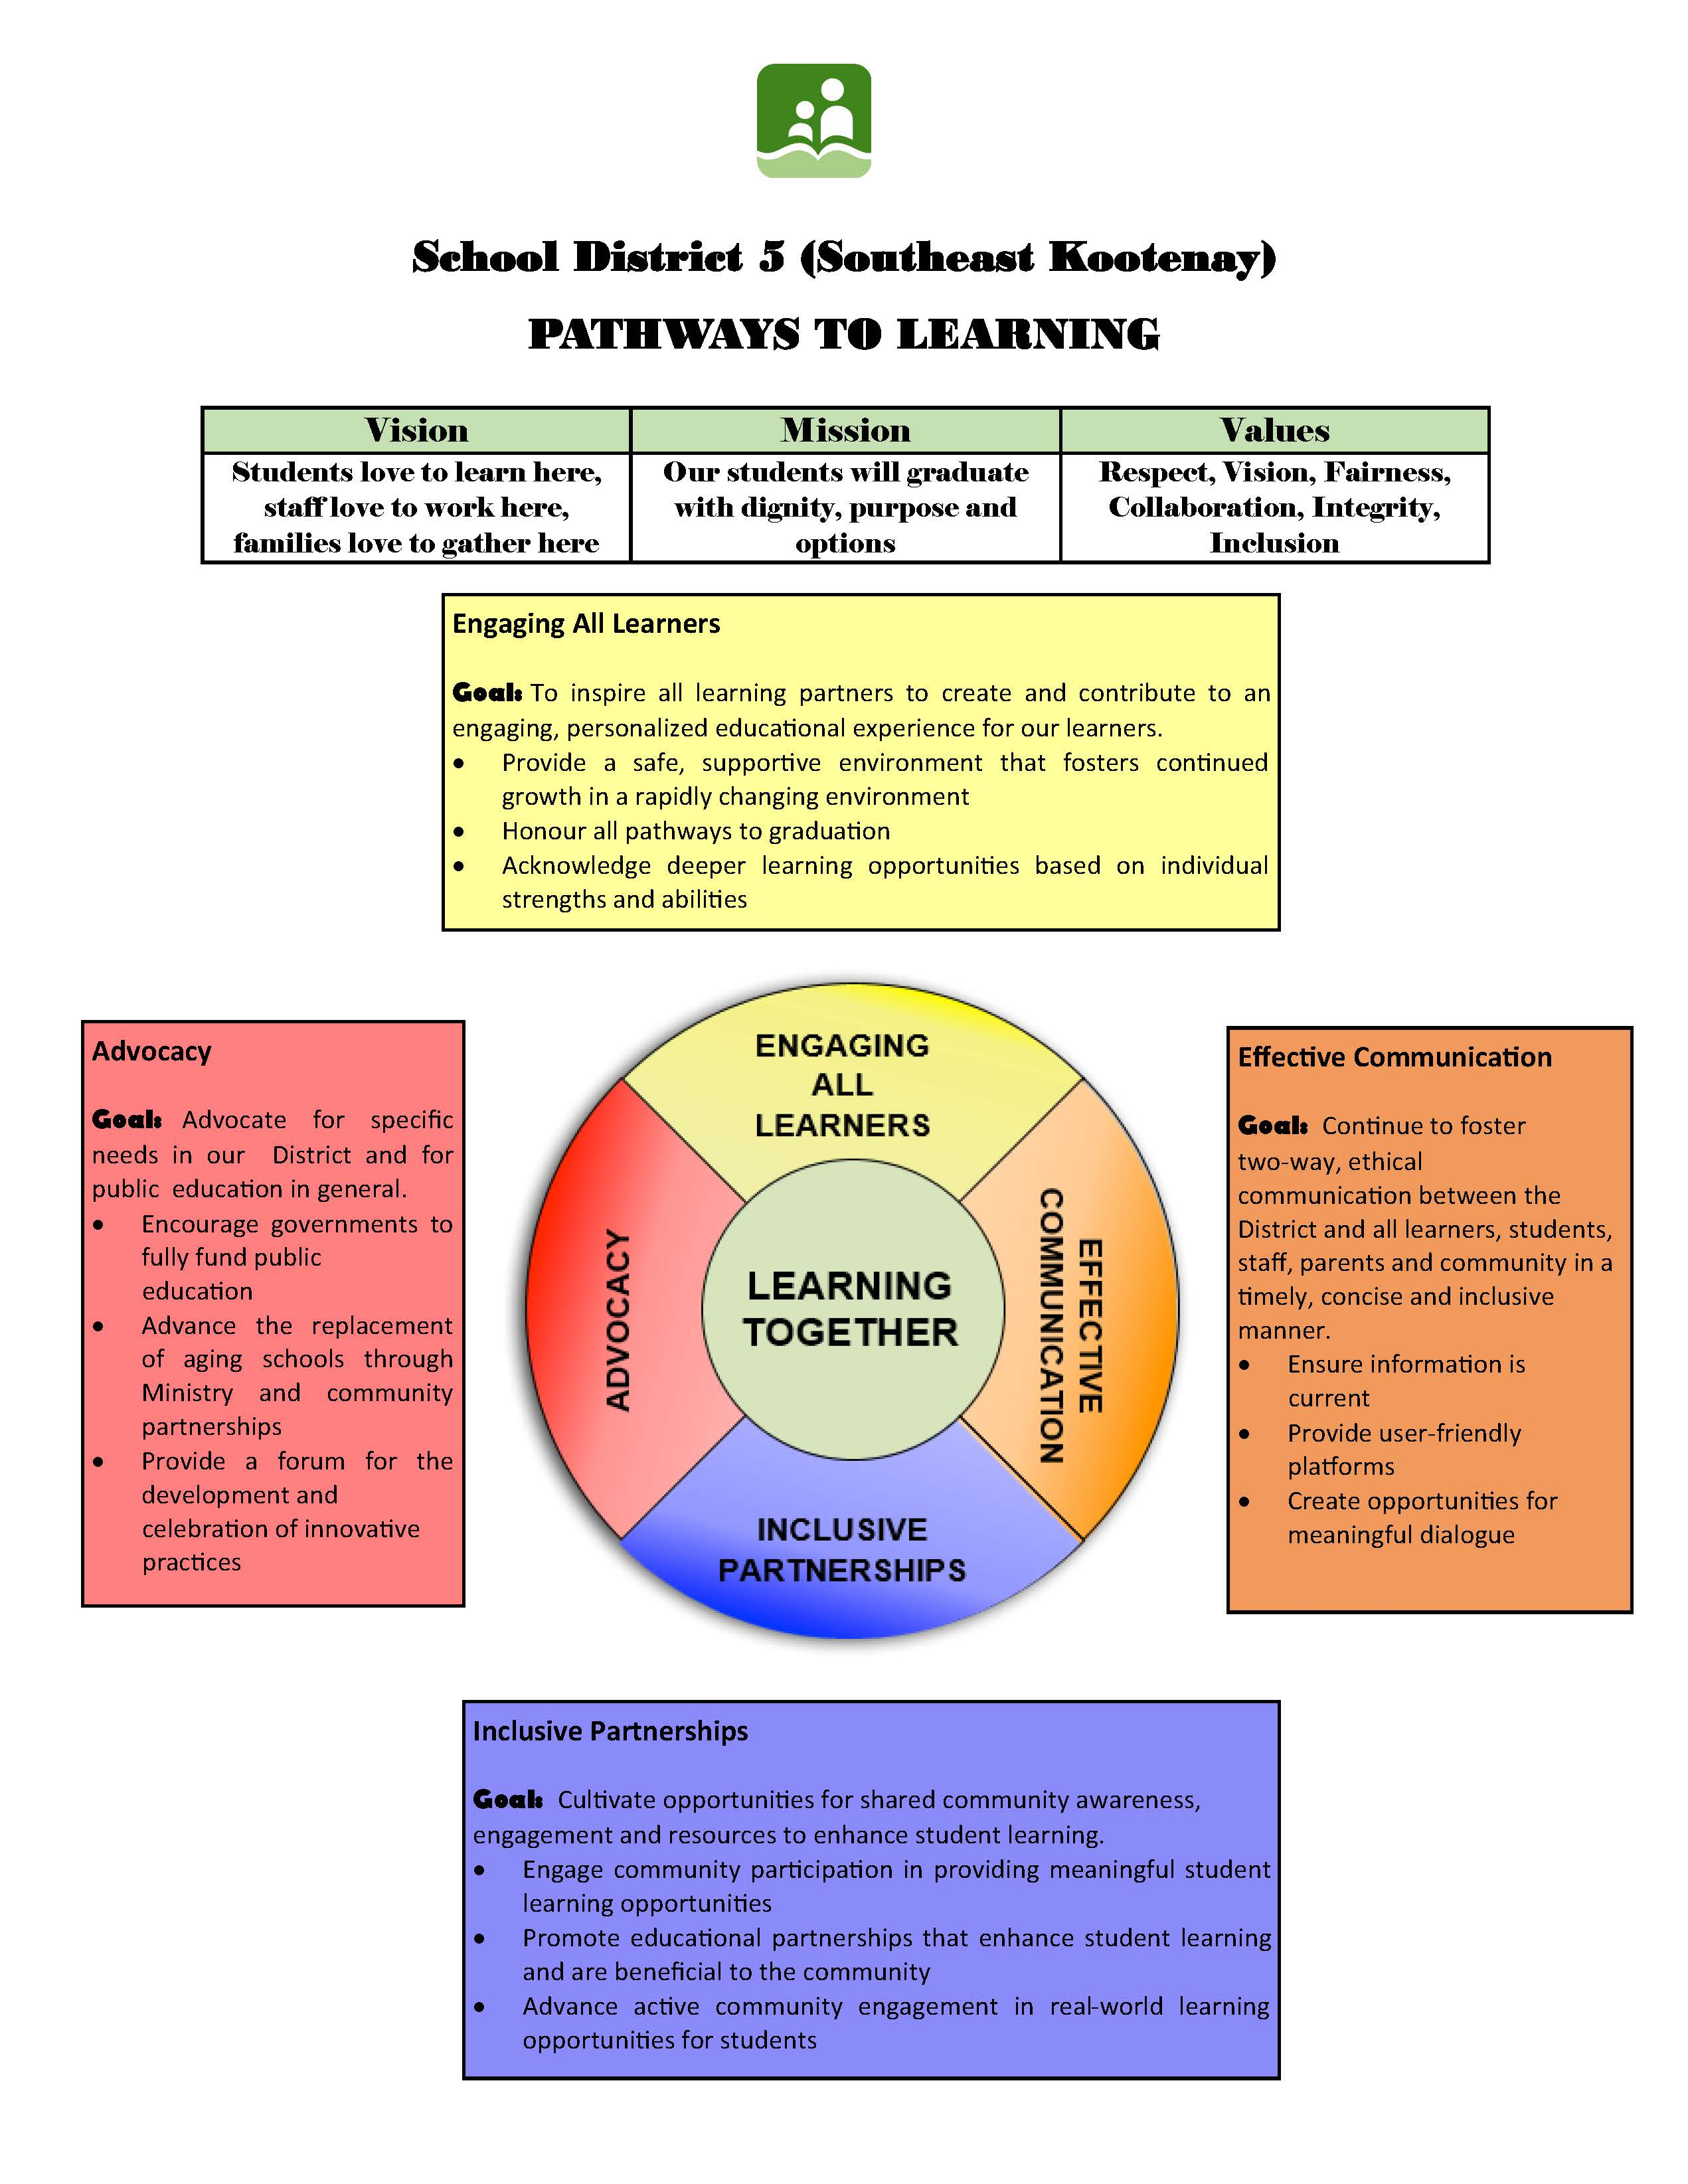 Pathways to Learning final 2015.jpg